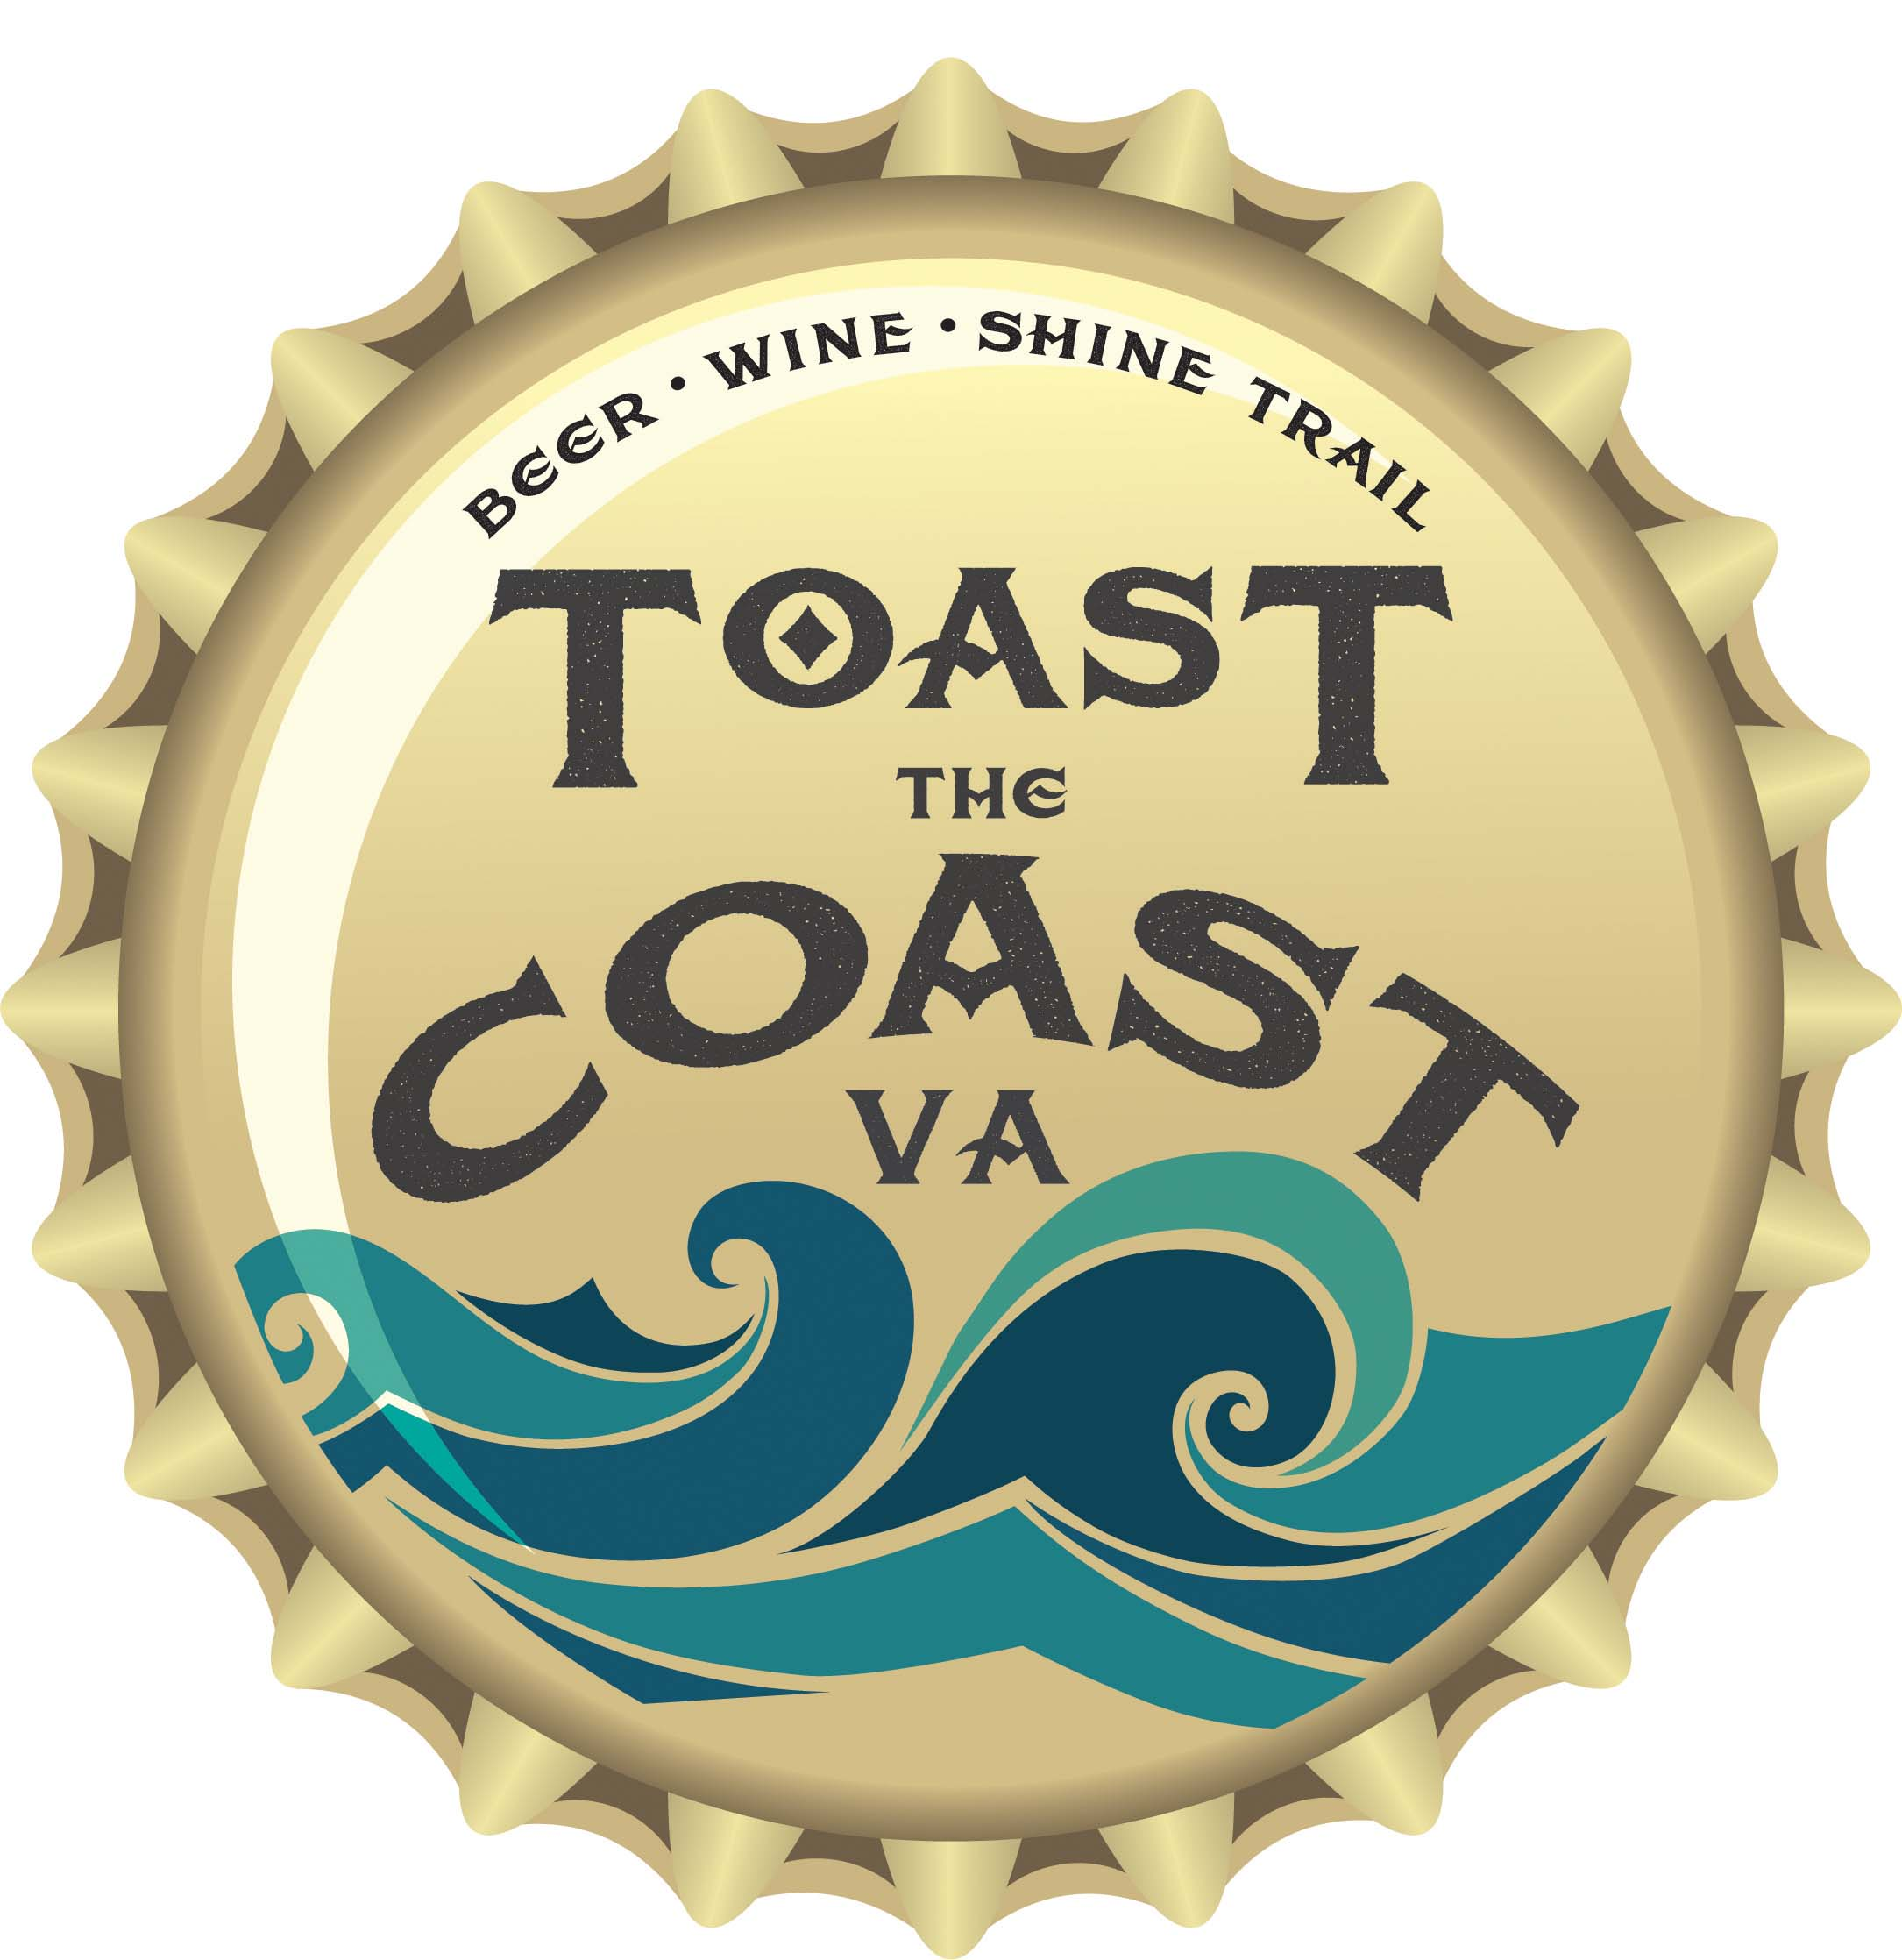 Toast the Coast, Beer, Wine Shine Trail